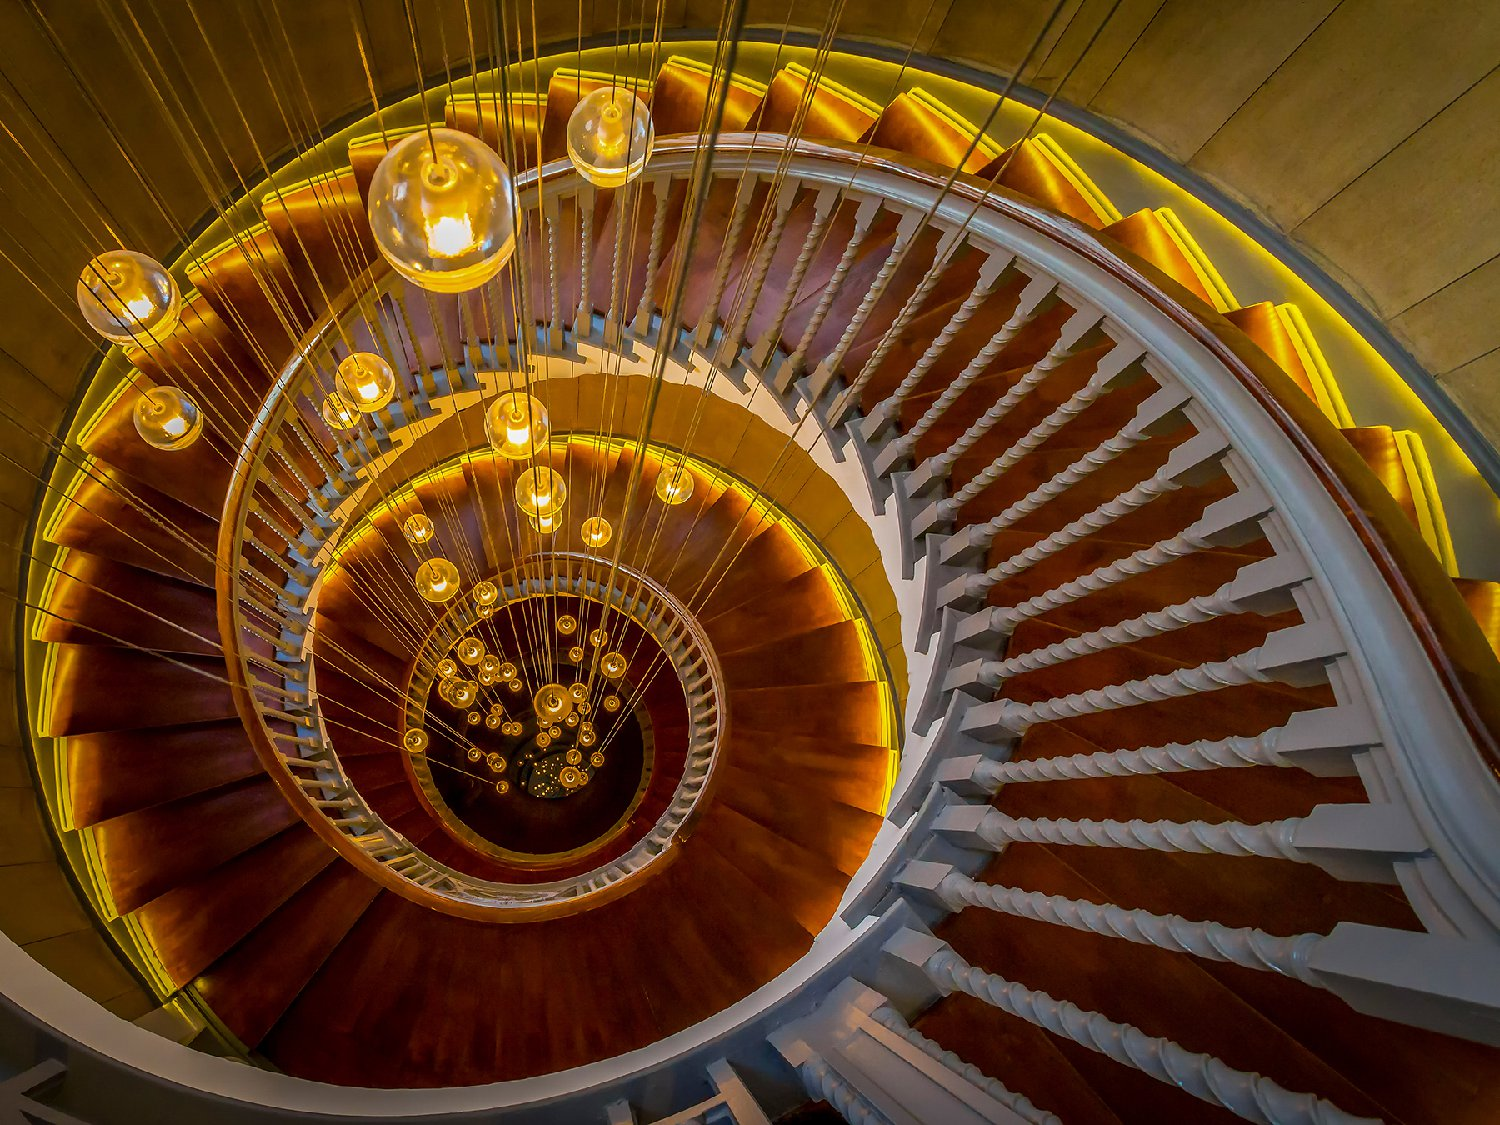 Spiral_Karl_Redshaw_london.jpg